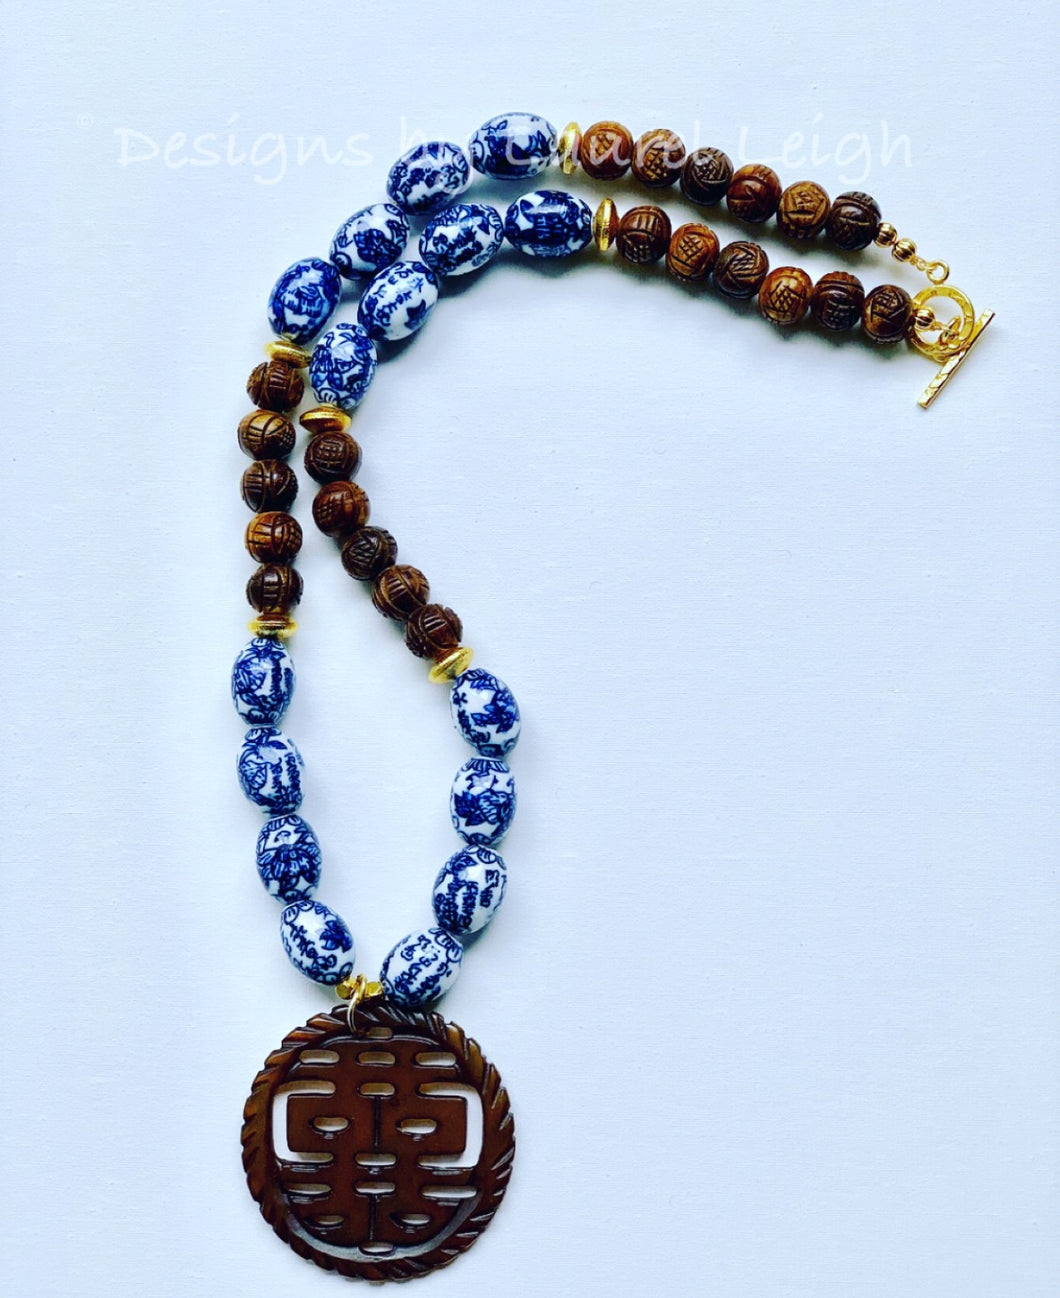 Blue and White Chinoiserie Vintage Bead Statement Necklace w/ Double Happiness Pendant - Designs by Laurel Leigh